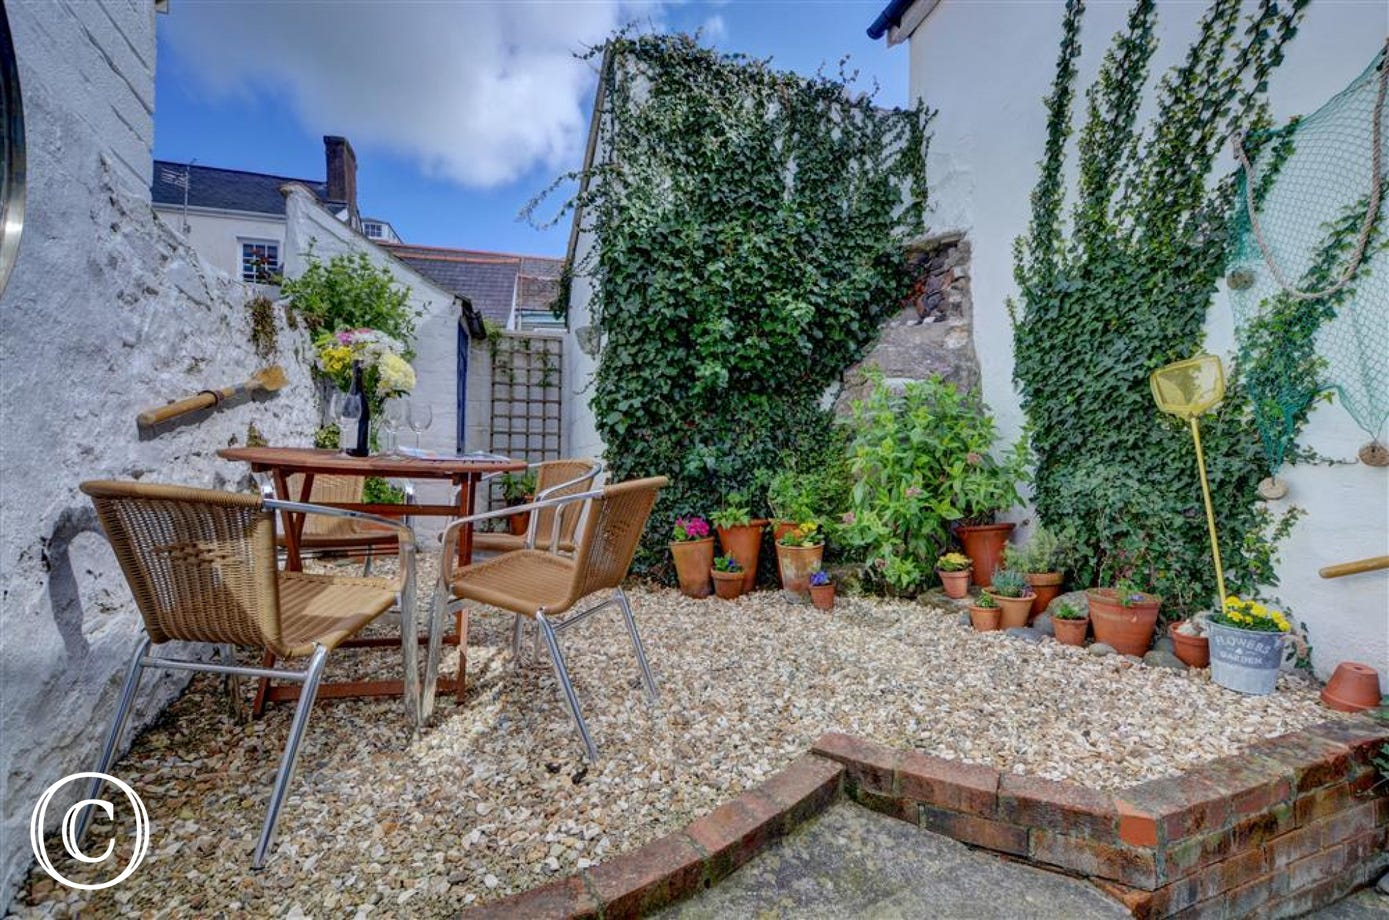 For relaxation and al fresco dining the cottage also offers a fully enclosed walled patio with garden furniture